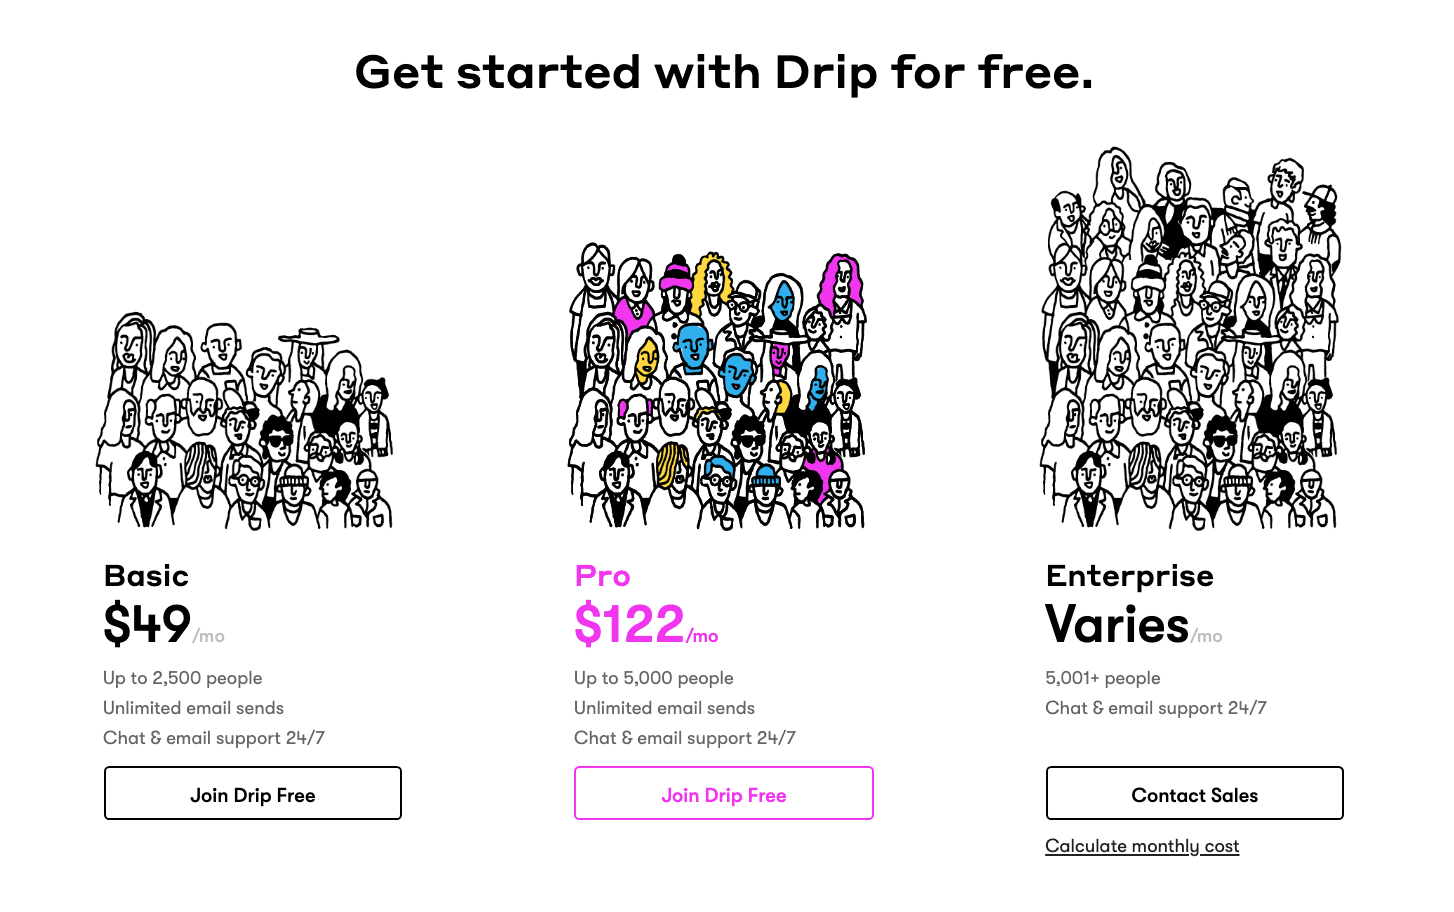 Drip Review: Where it shines (and where it's quite overrated)